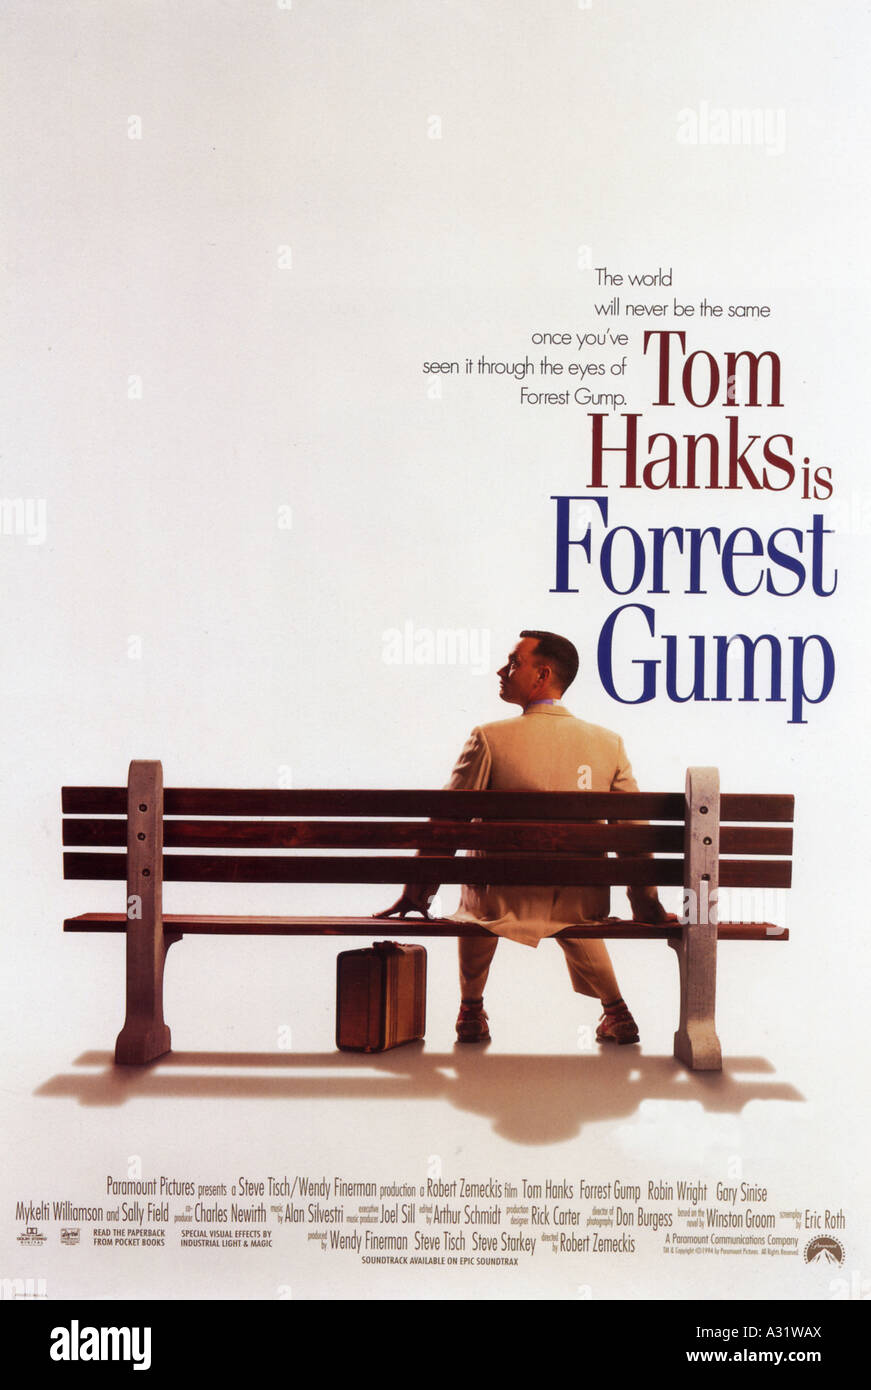 FORREST GUMP poster for 1994 Paramount film with Tom Hanks - Stock Image